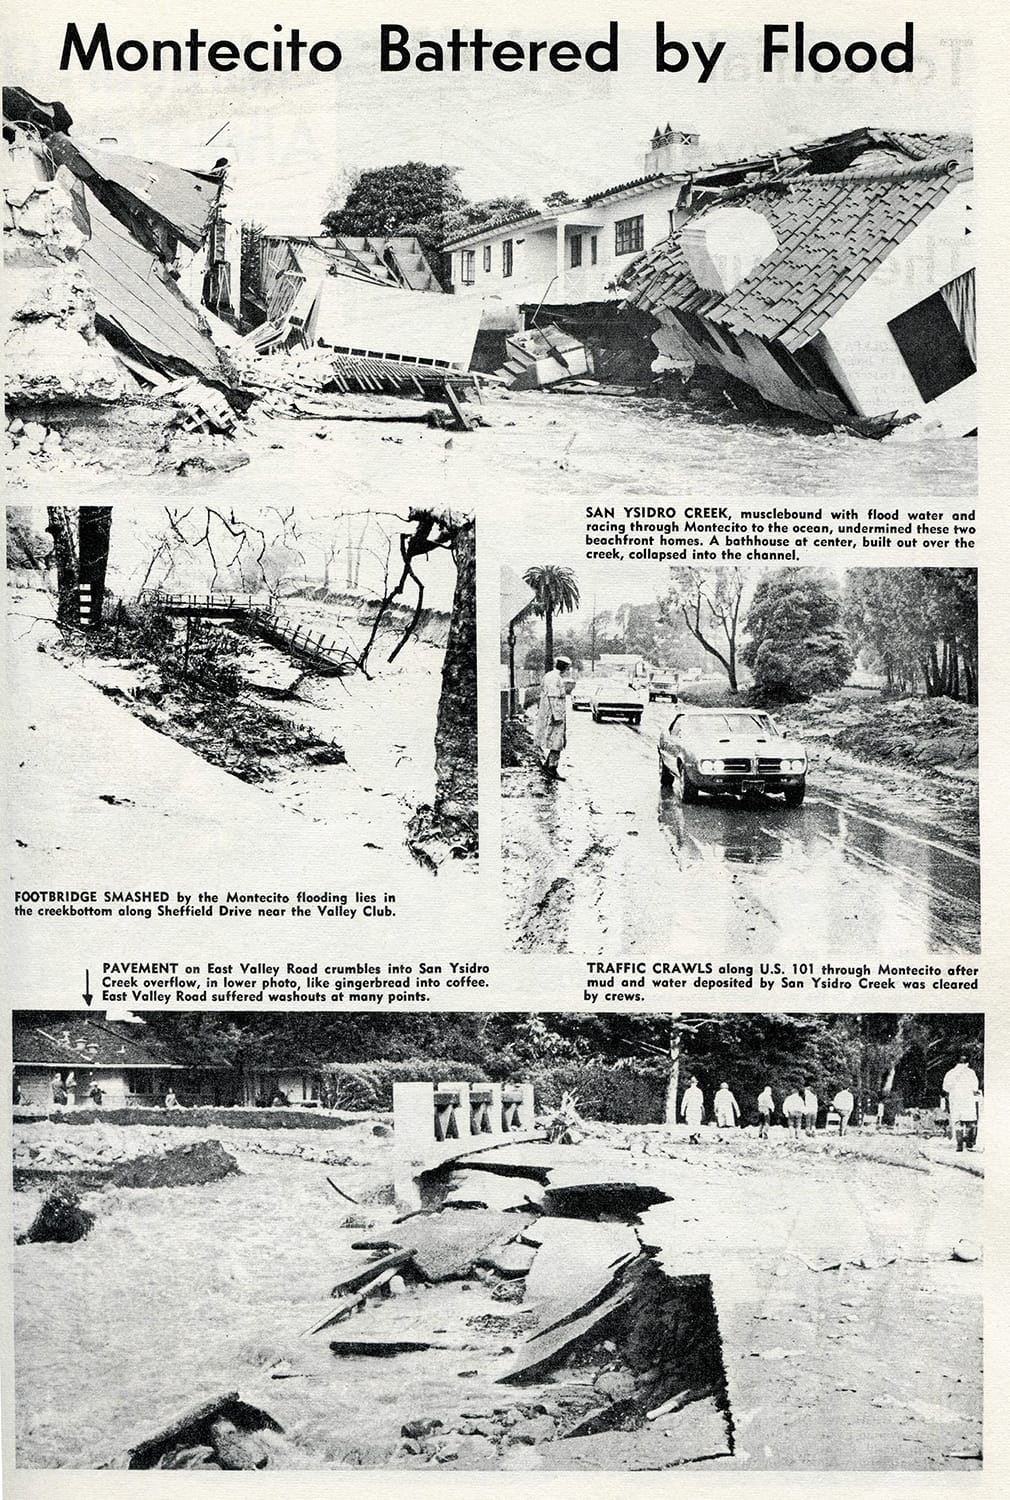 January 28, 1969 - Montecito Battered by Flood